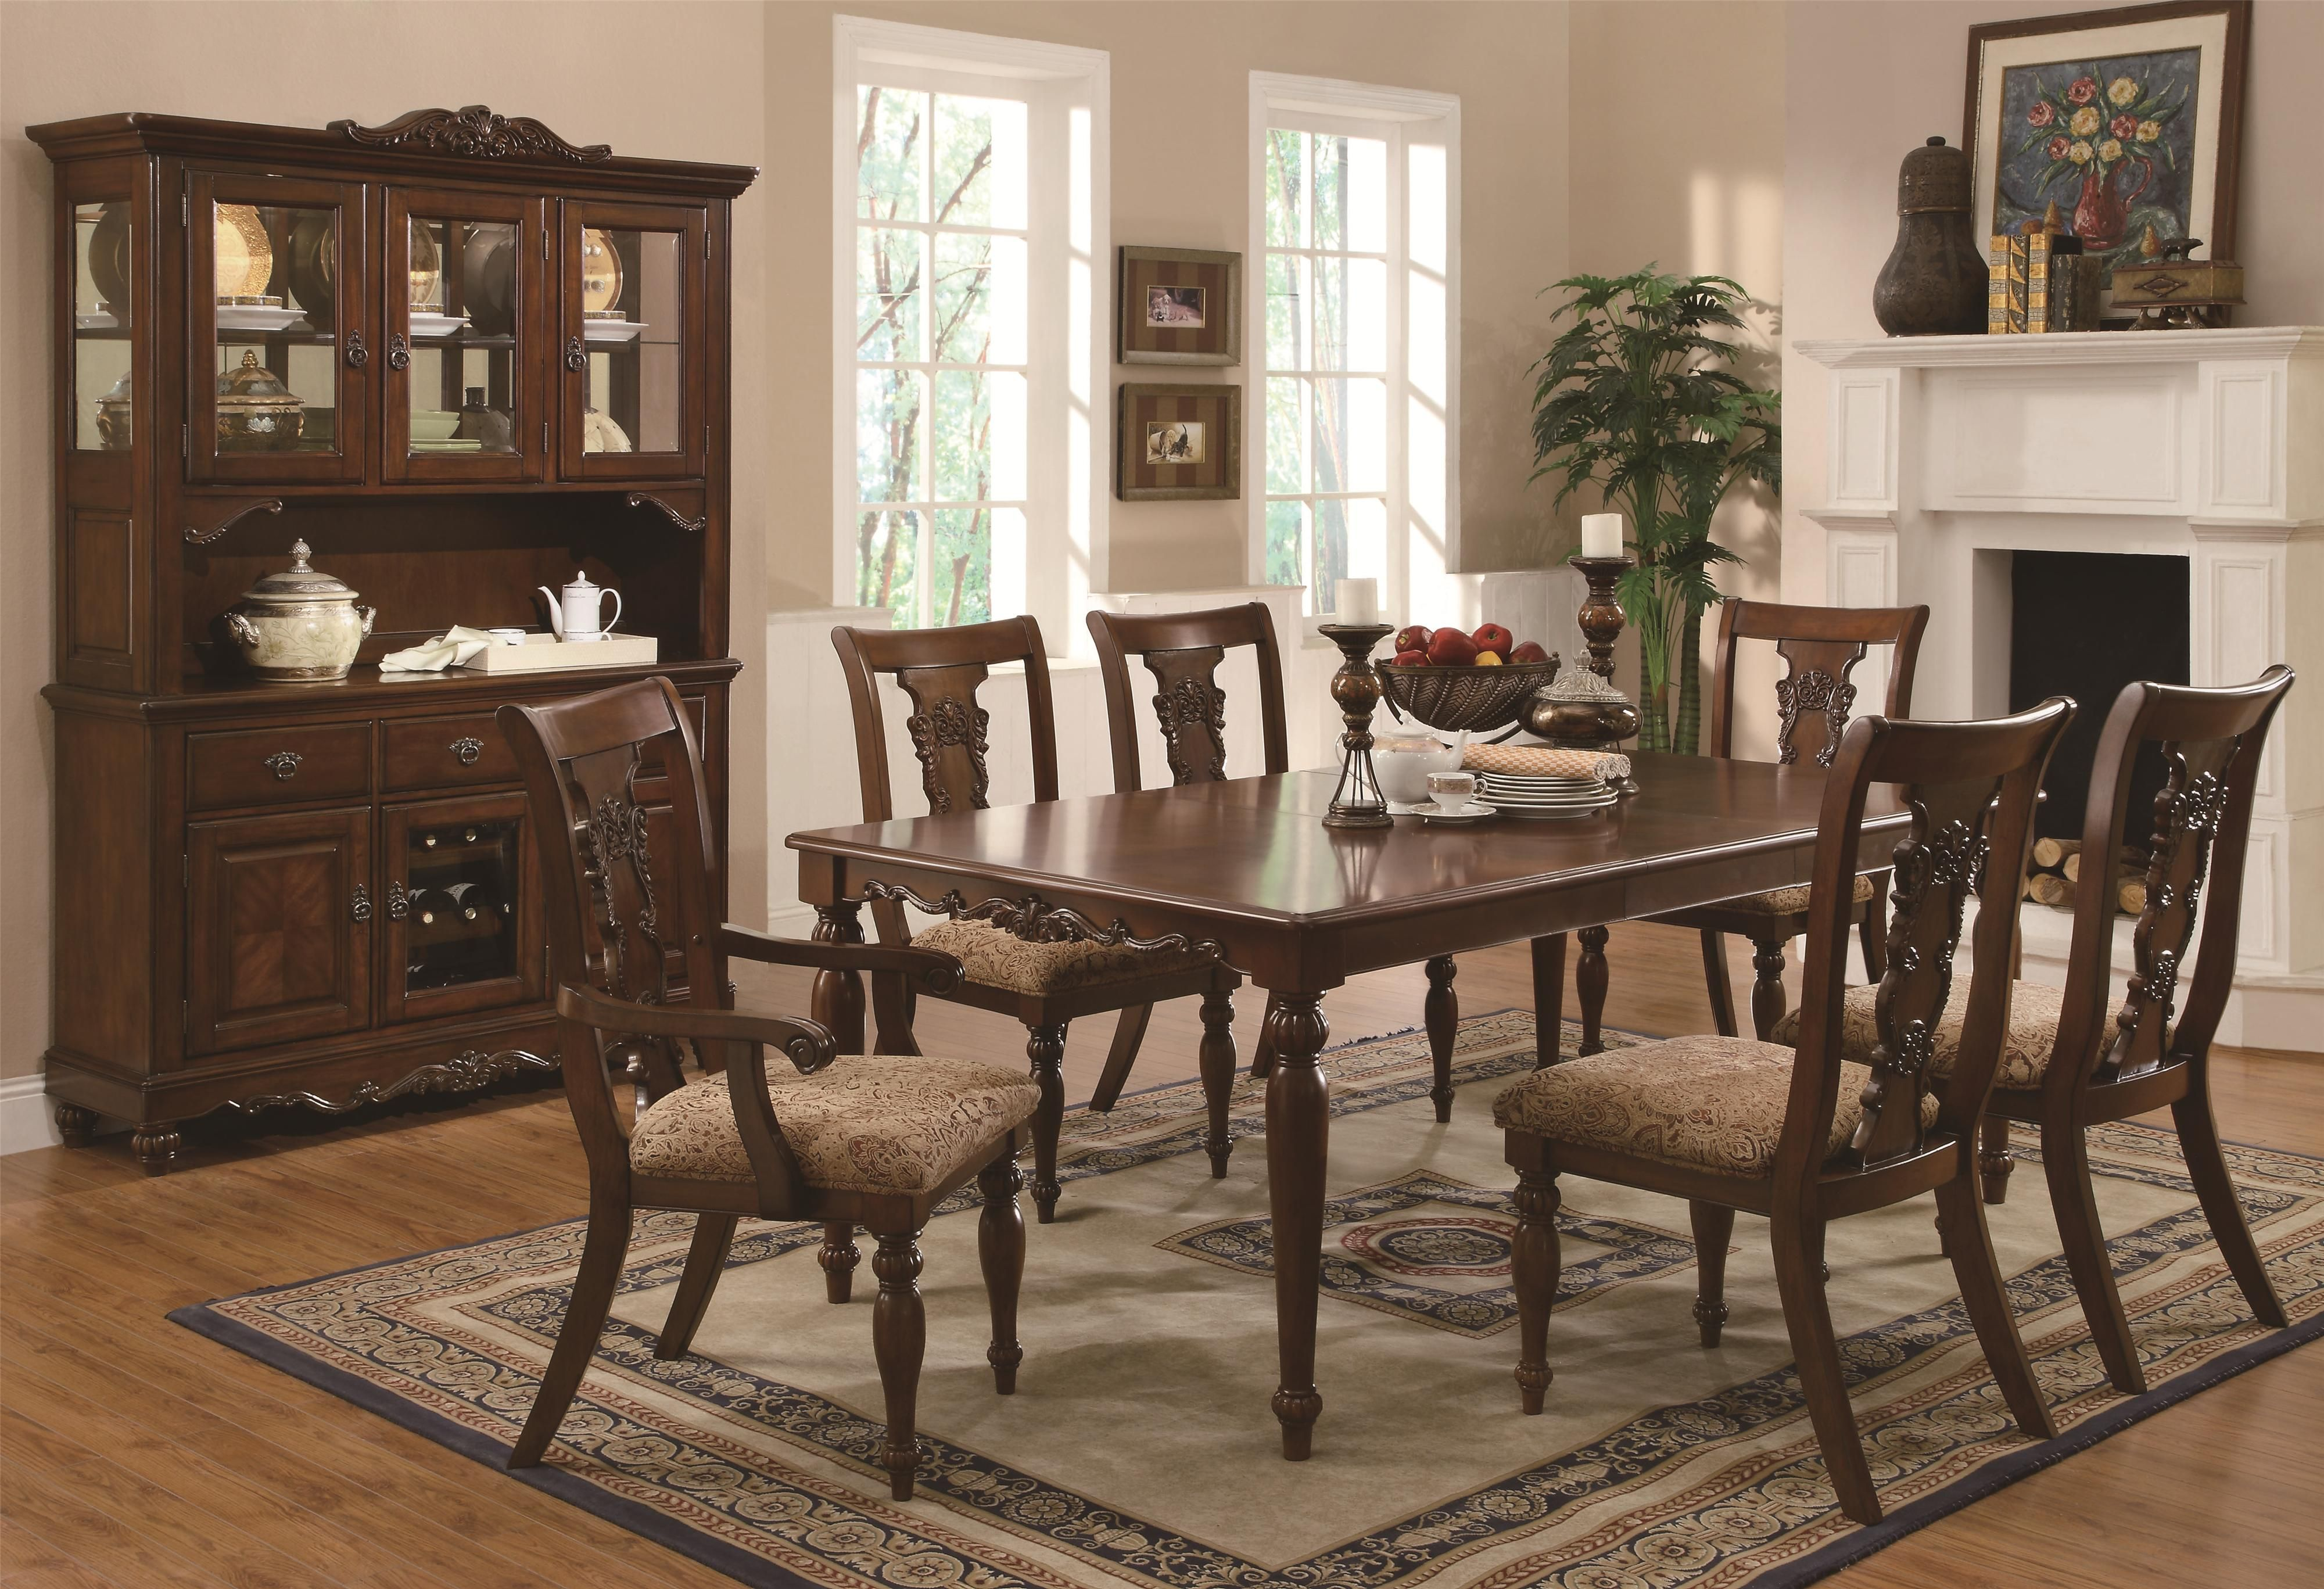 This Elegant Dining Collection Has The Look Of Treasured